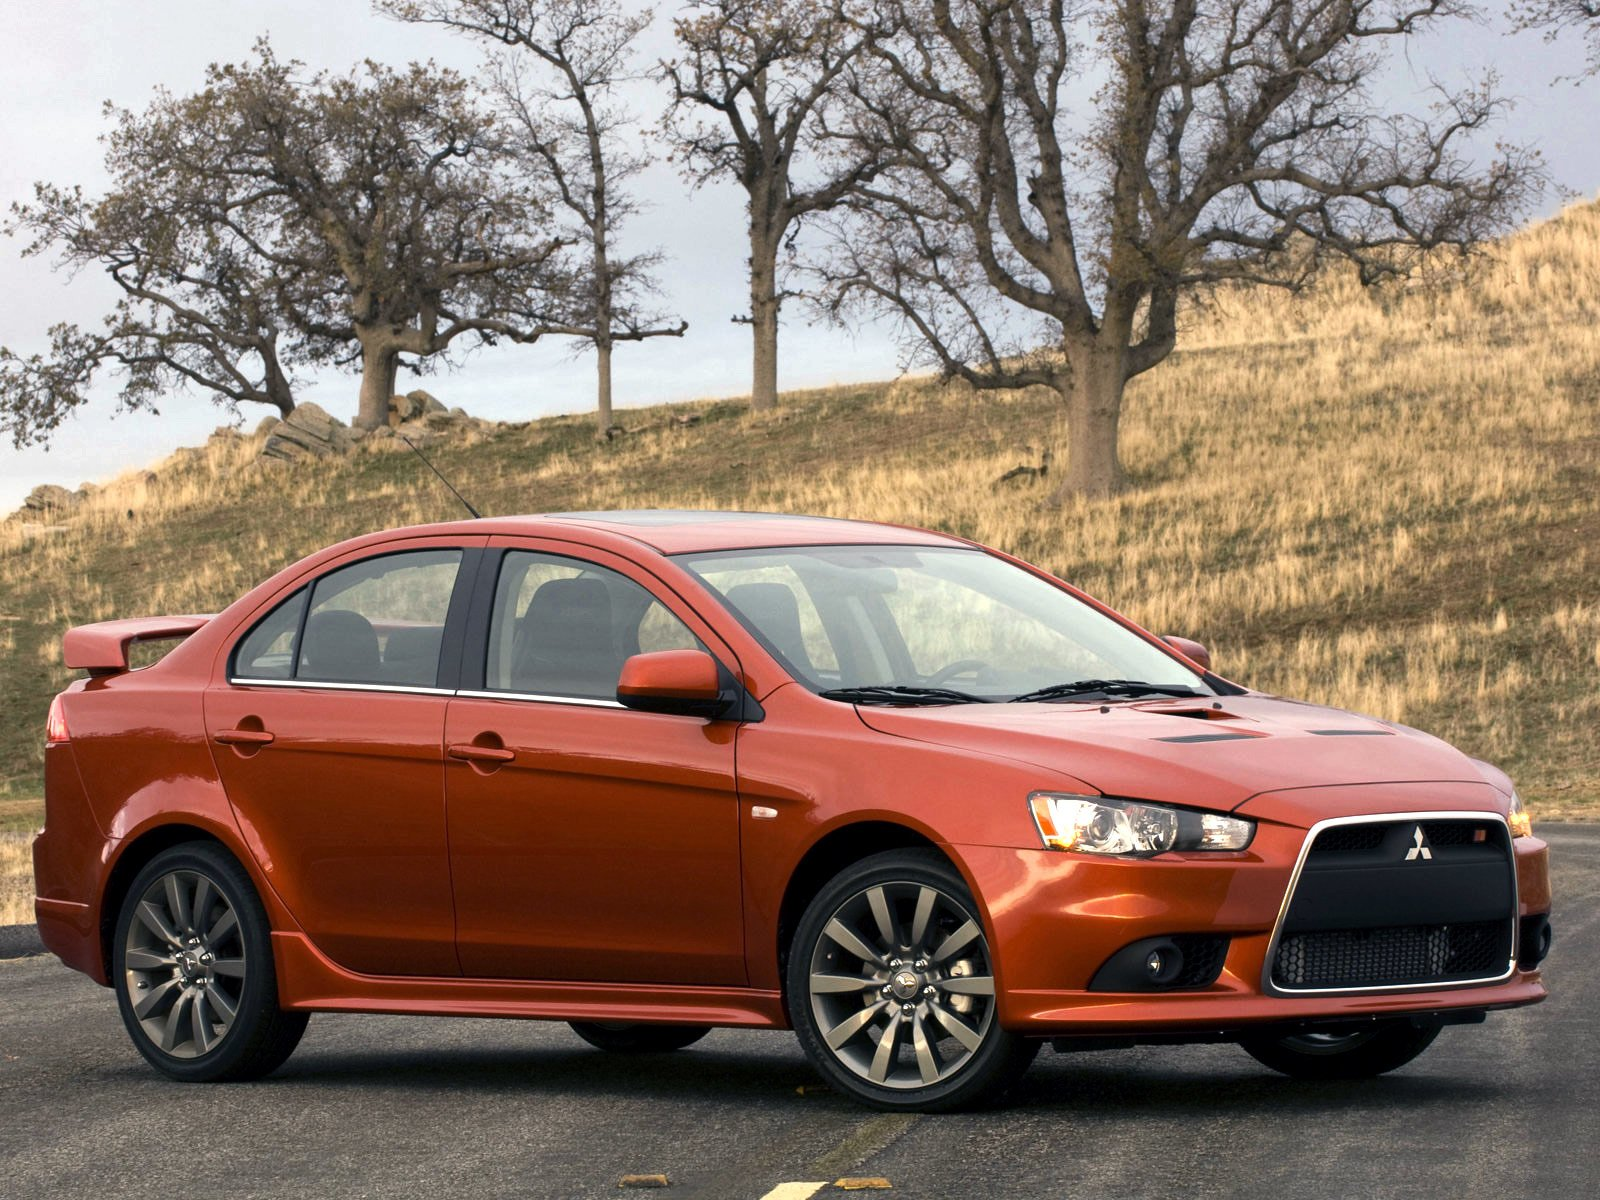 Latest Car Accident Lawyers Mitsubishi Lancer Ralliart 2009 Photos Free Download